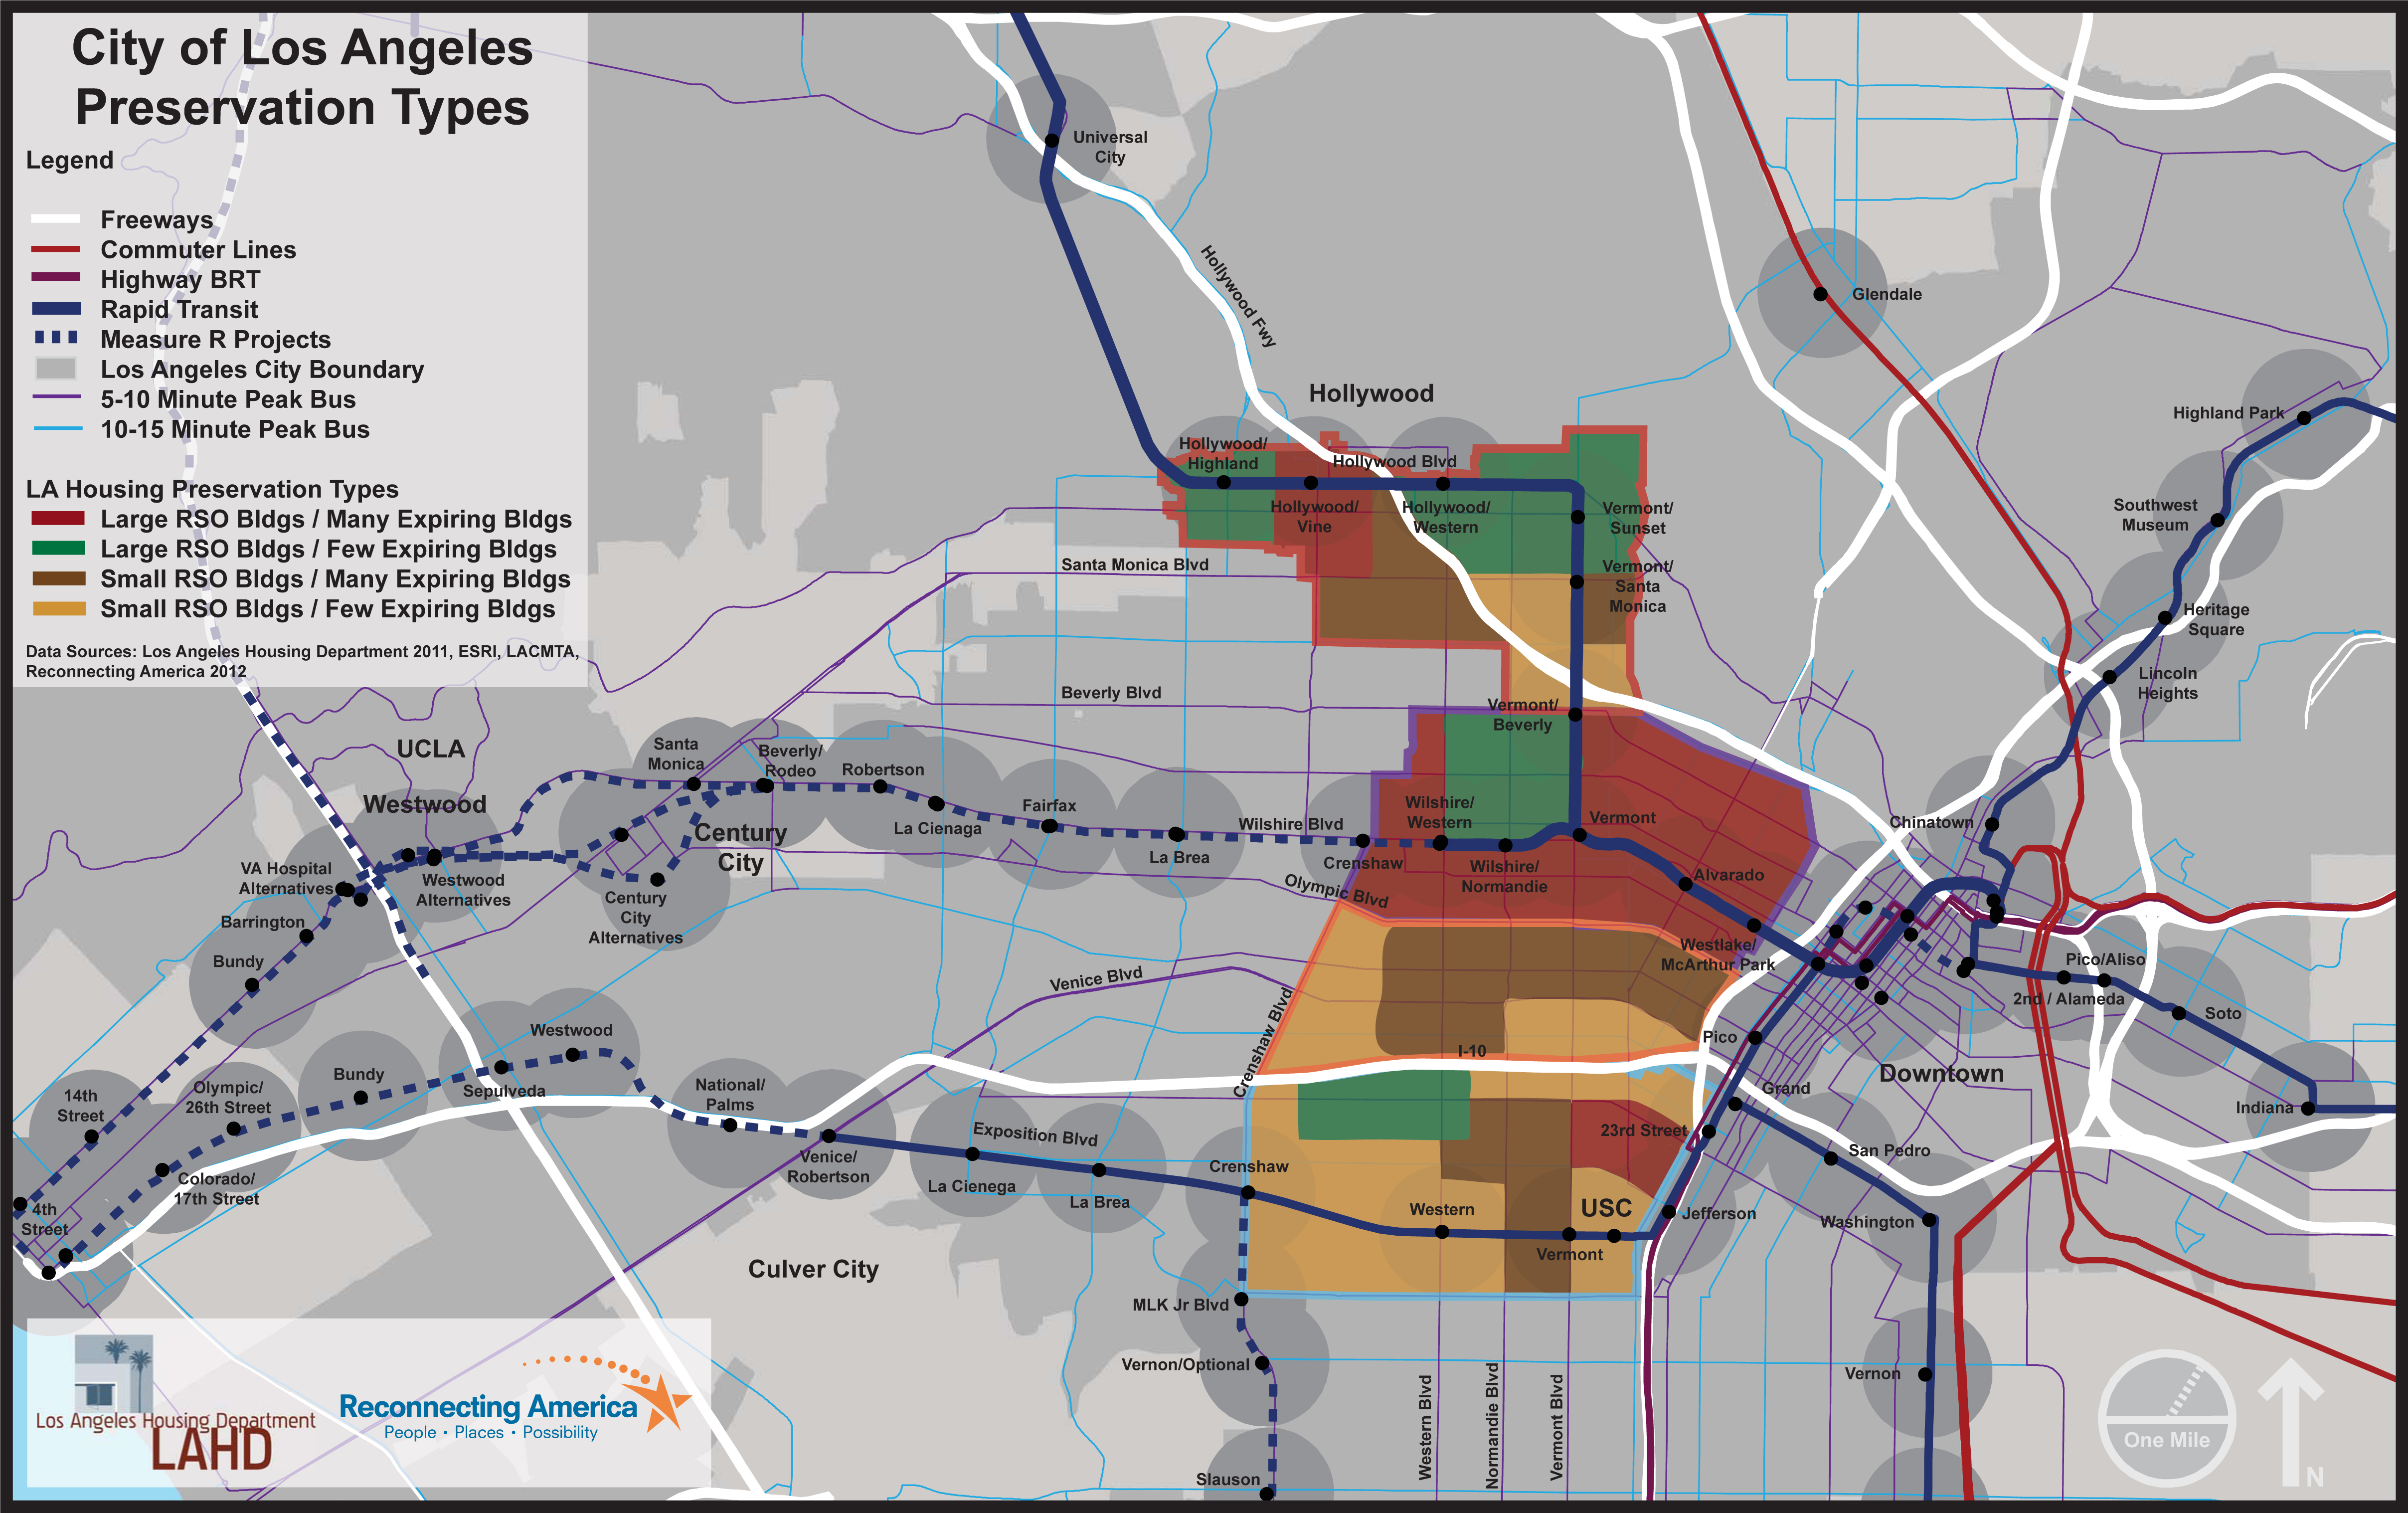 Preservation In TransitOriented Districts Maps Reconnecting America - United states of america map los angeles